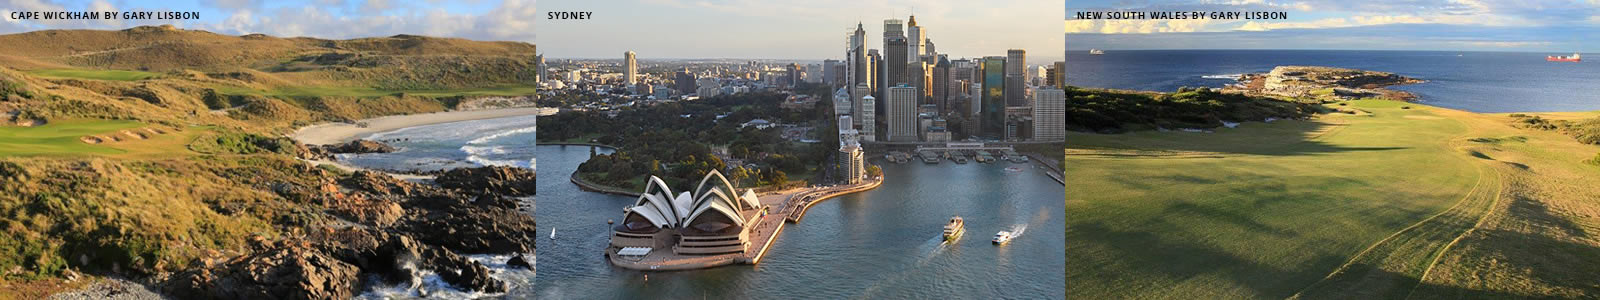 Golf Vacation Packages Australia Luxury Cruises Perrygolf